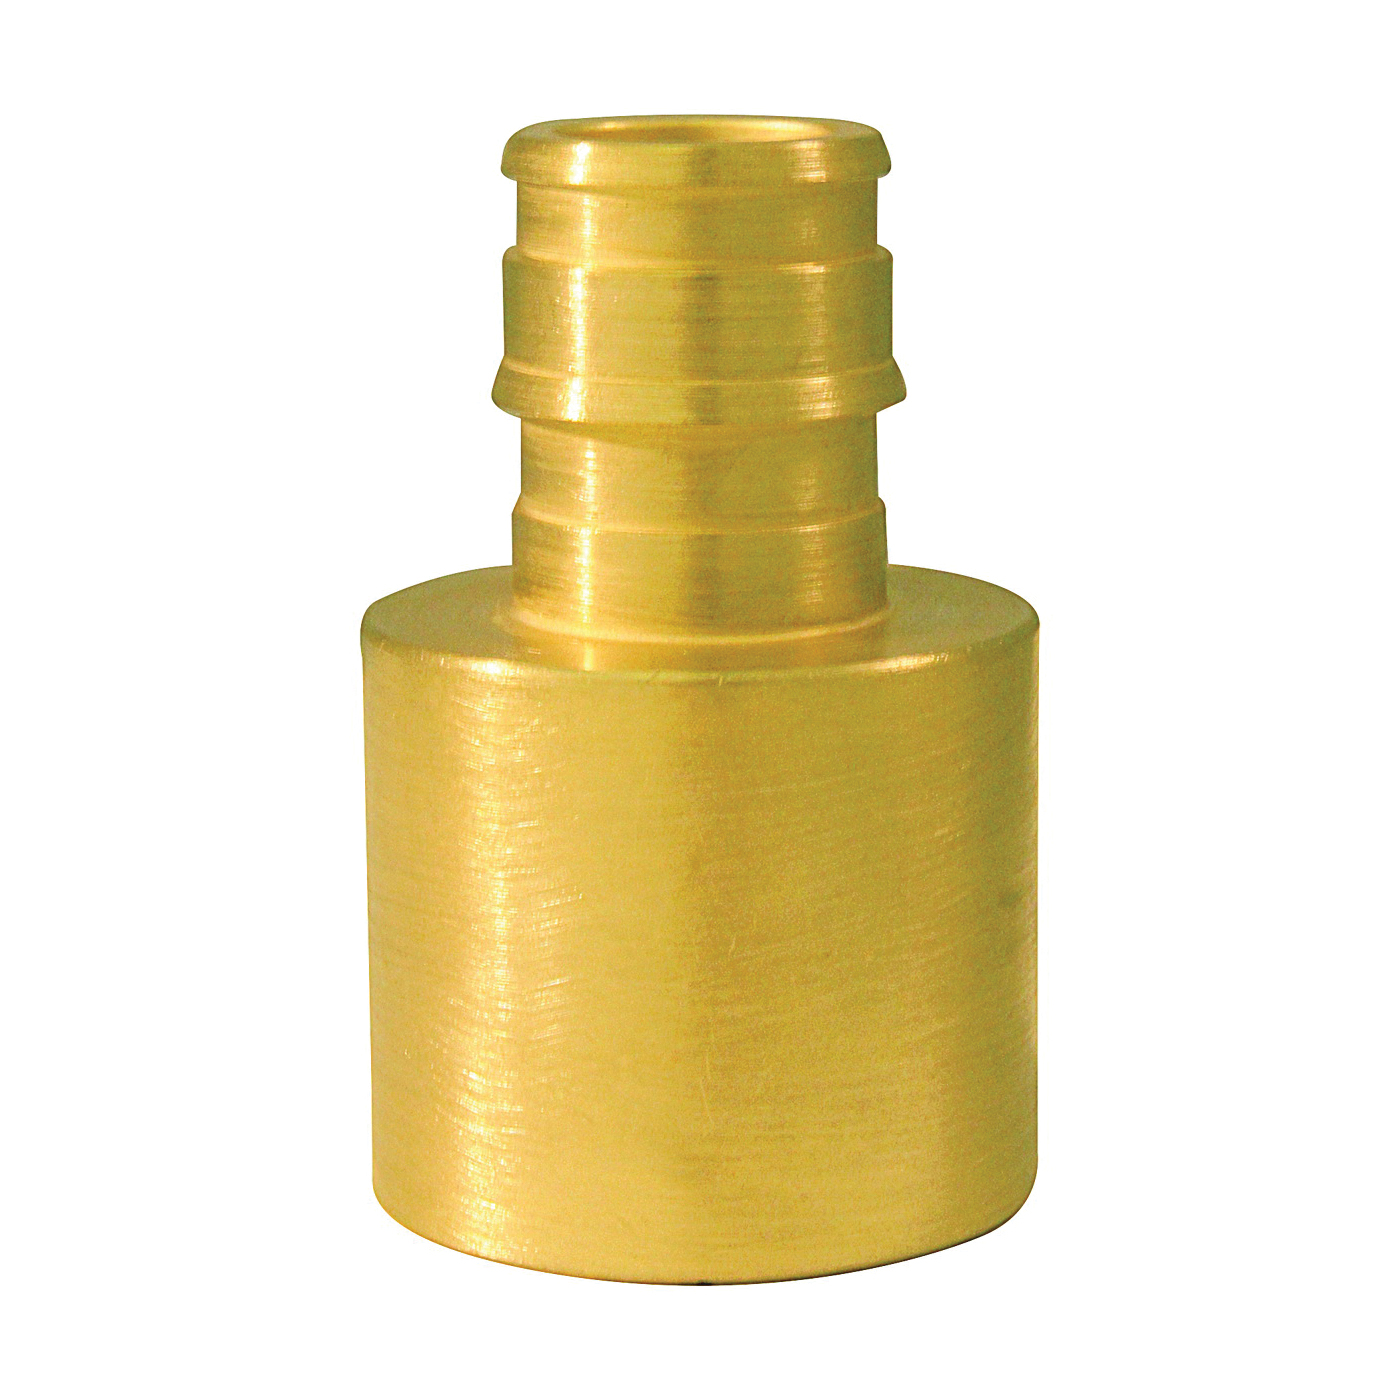 Picture of Apollo ExpansionPEX EPXFS1234 Solder Adapter, 1/2 x 3/4 in, Barb x Female Sweat, Brass, 200 psi Pressure